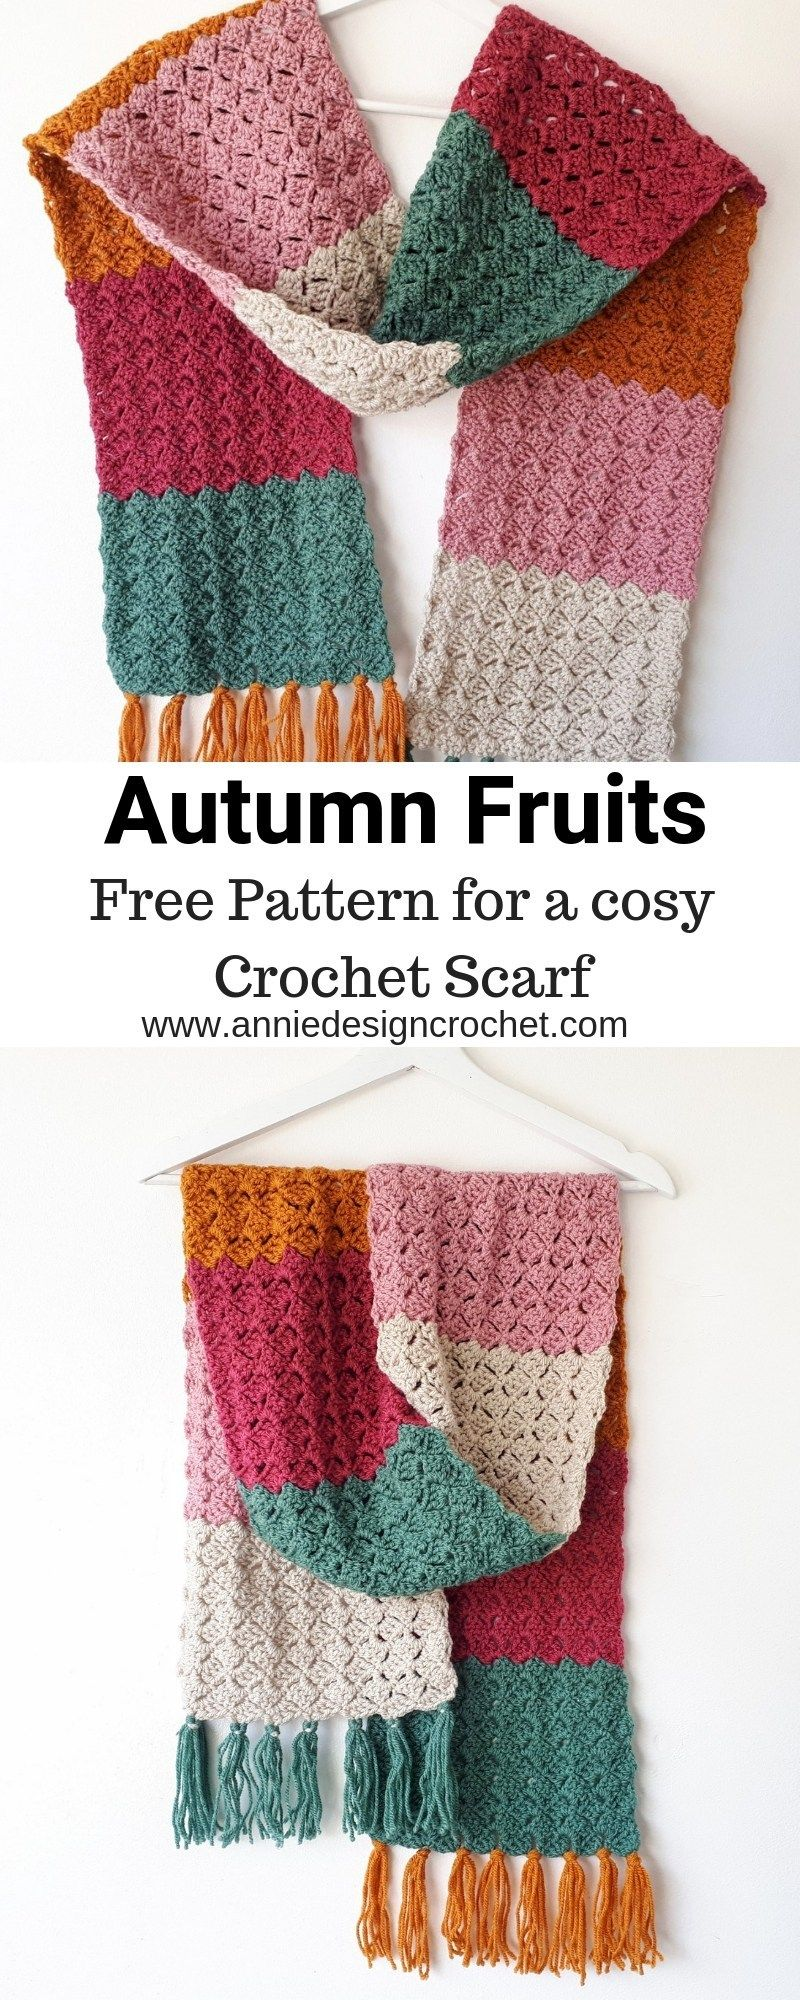 This free pattern for a cosy crochet scarf, is suitable for a beginner and is perfect for cooler weather, to wrap you in all the warmth you will need. The easy repeat pattern makes this project a fast make, you could rustle up a trendy color-block scarf for everyone on your gifting list! Instructions in US and UK Crochet terms.The bold and vibrant colors make a great statement accessory to brighten up a neutral outfit. #crochetscarves